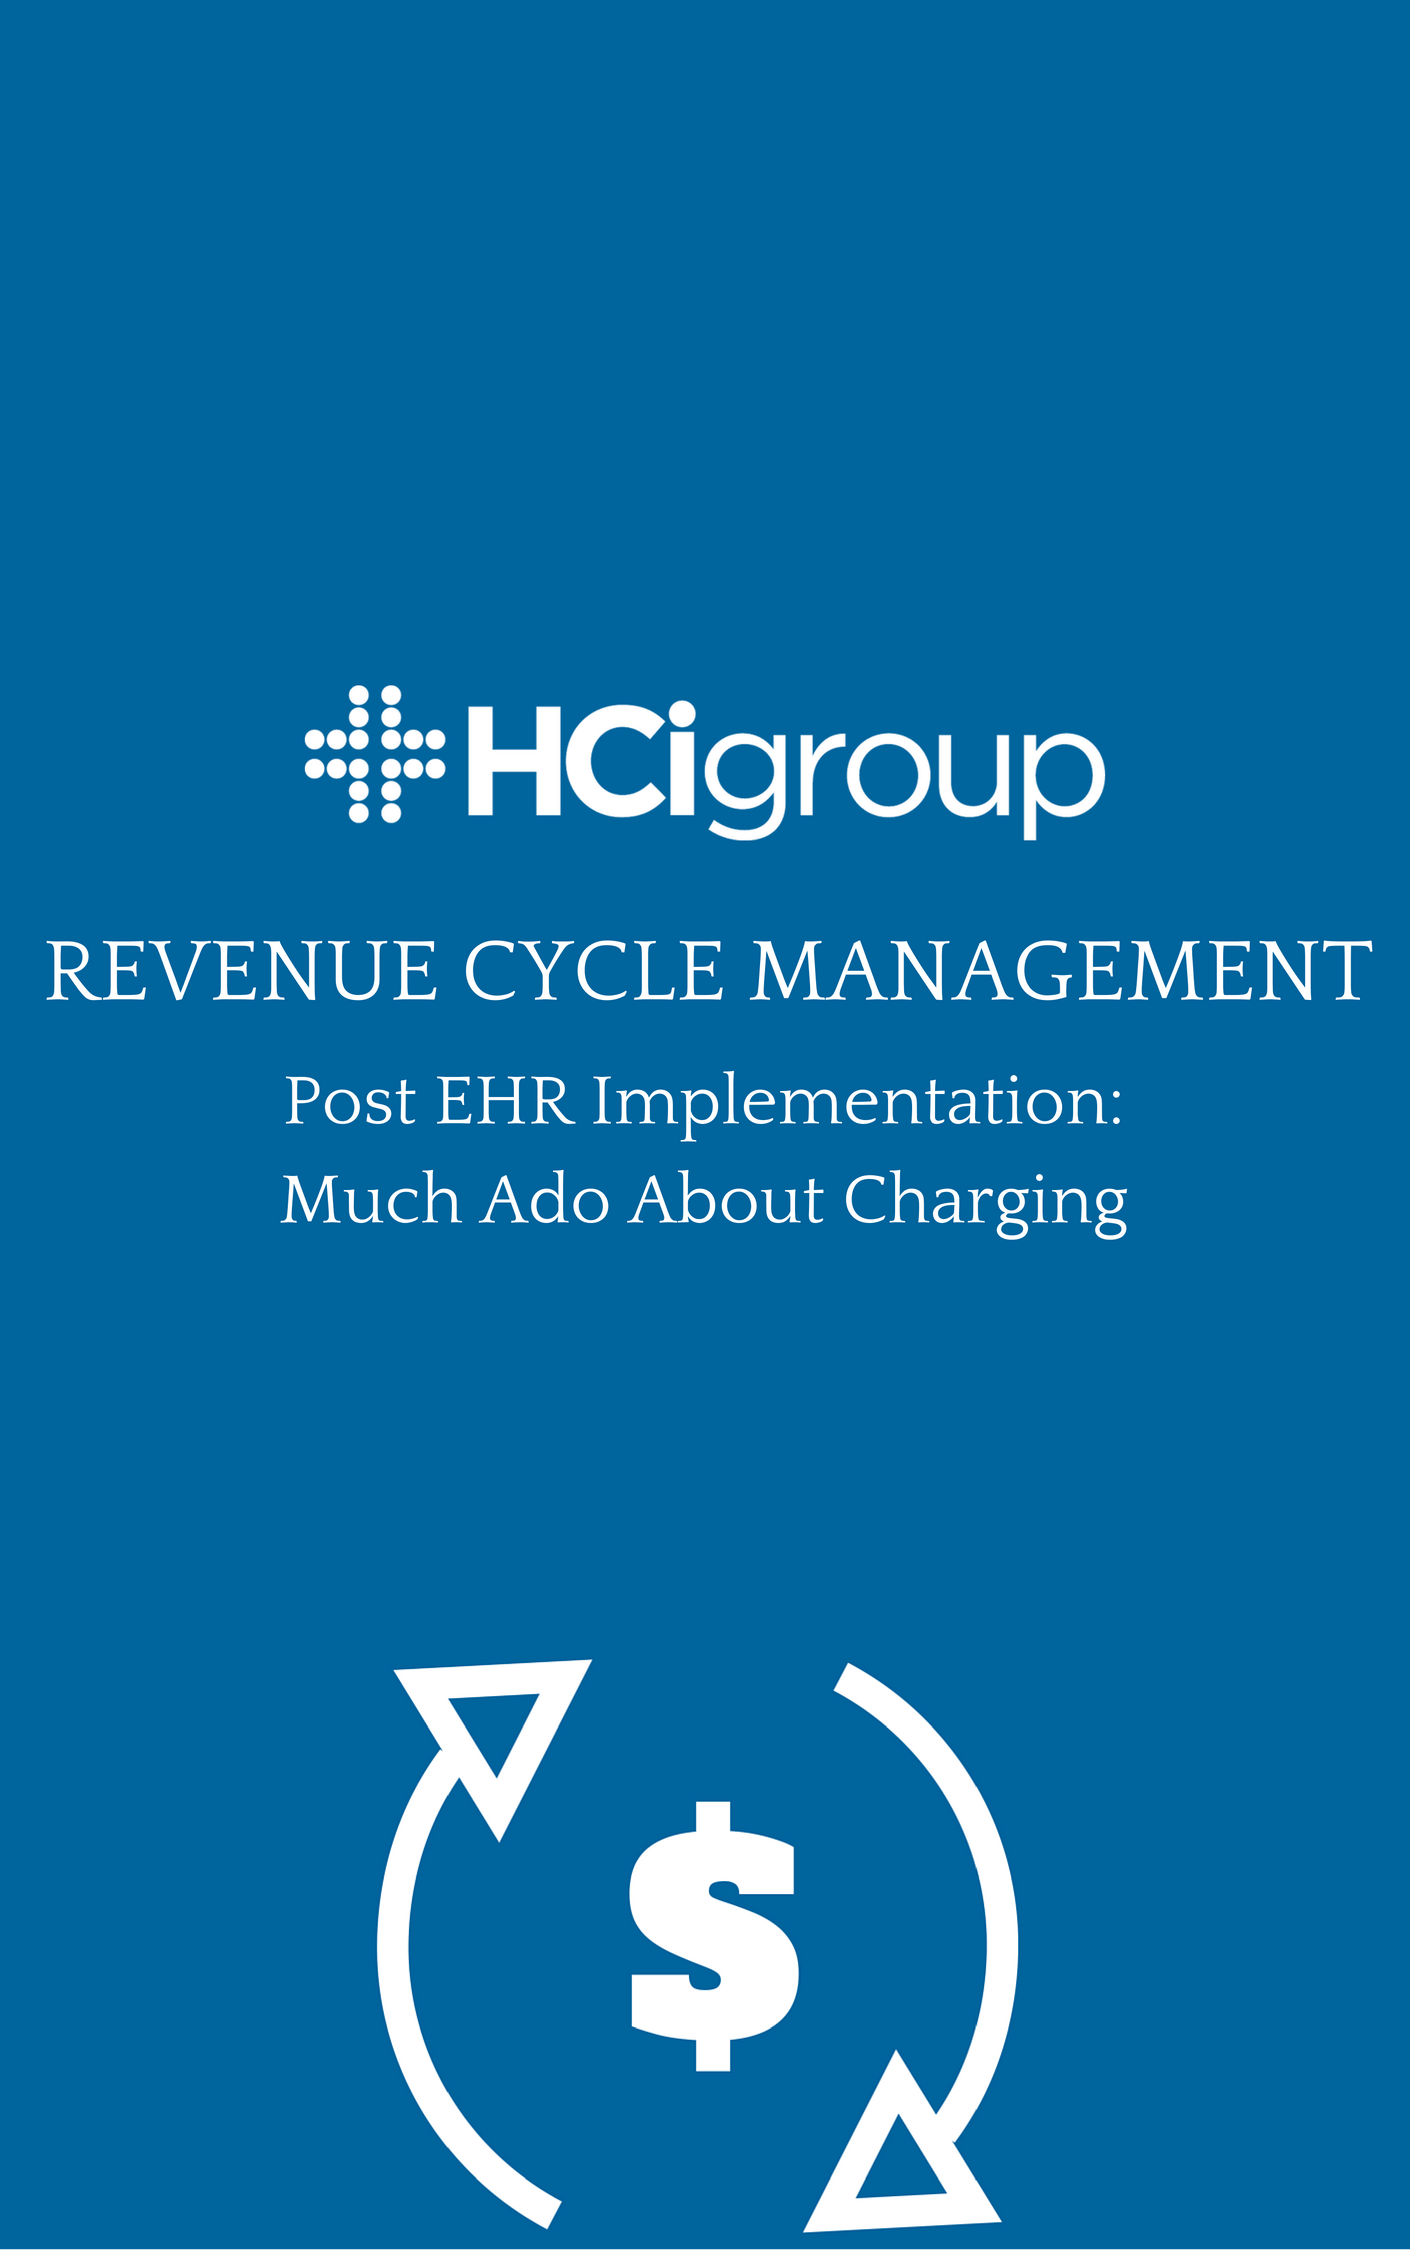 Download Revenue Cycle Management Post EHR Implementation: Charging